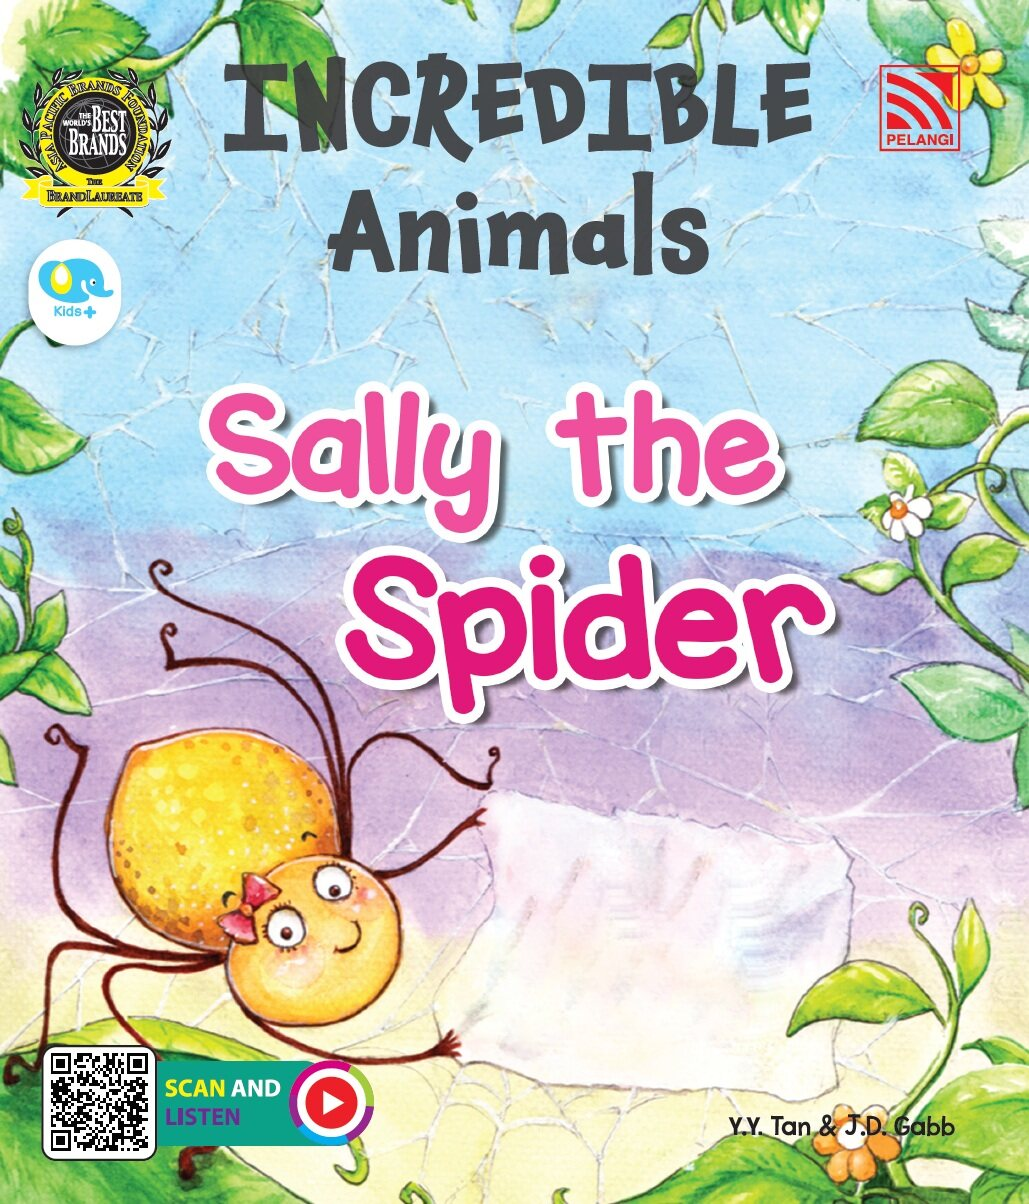 Pelangibooks Storybook Incredible Animals - Sally The Spider